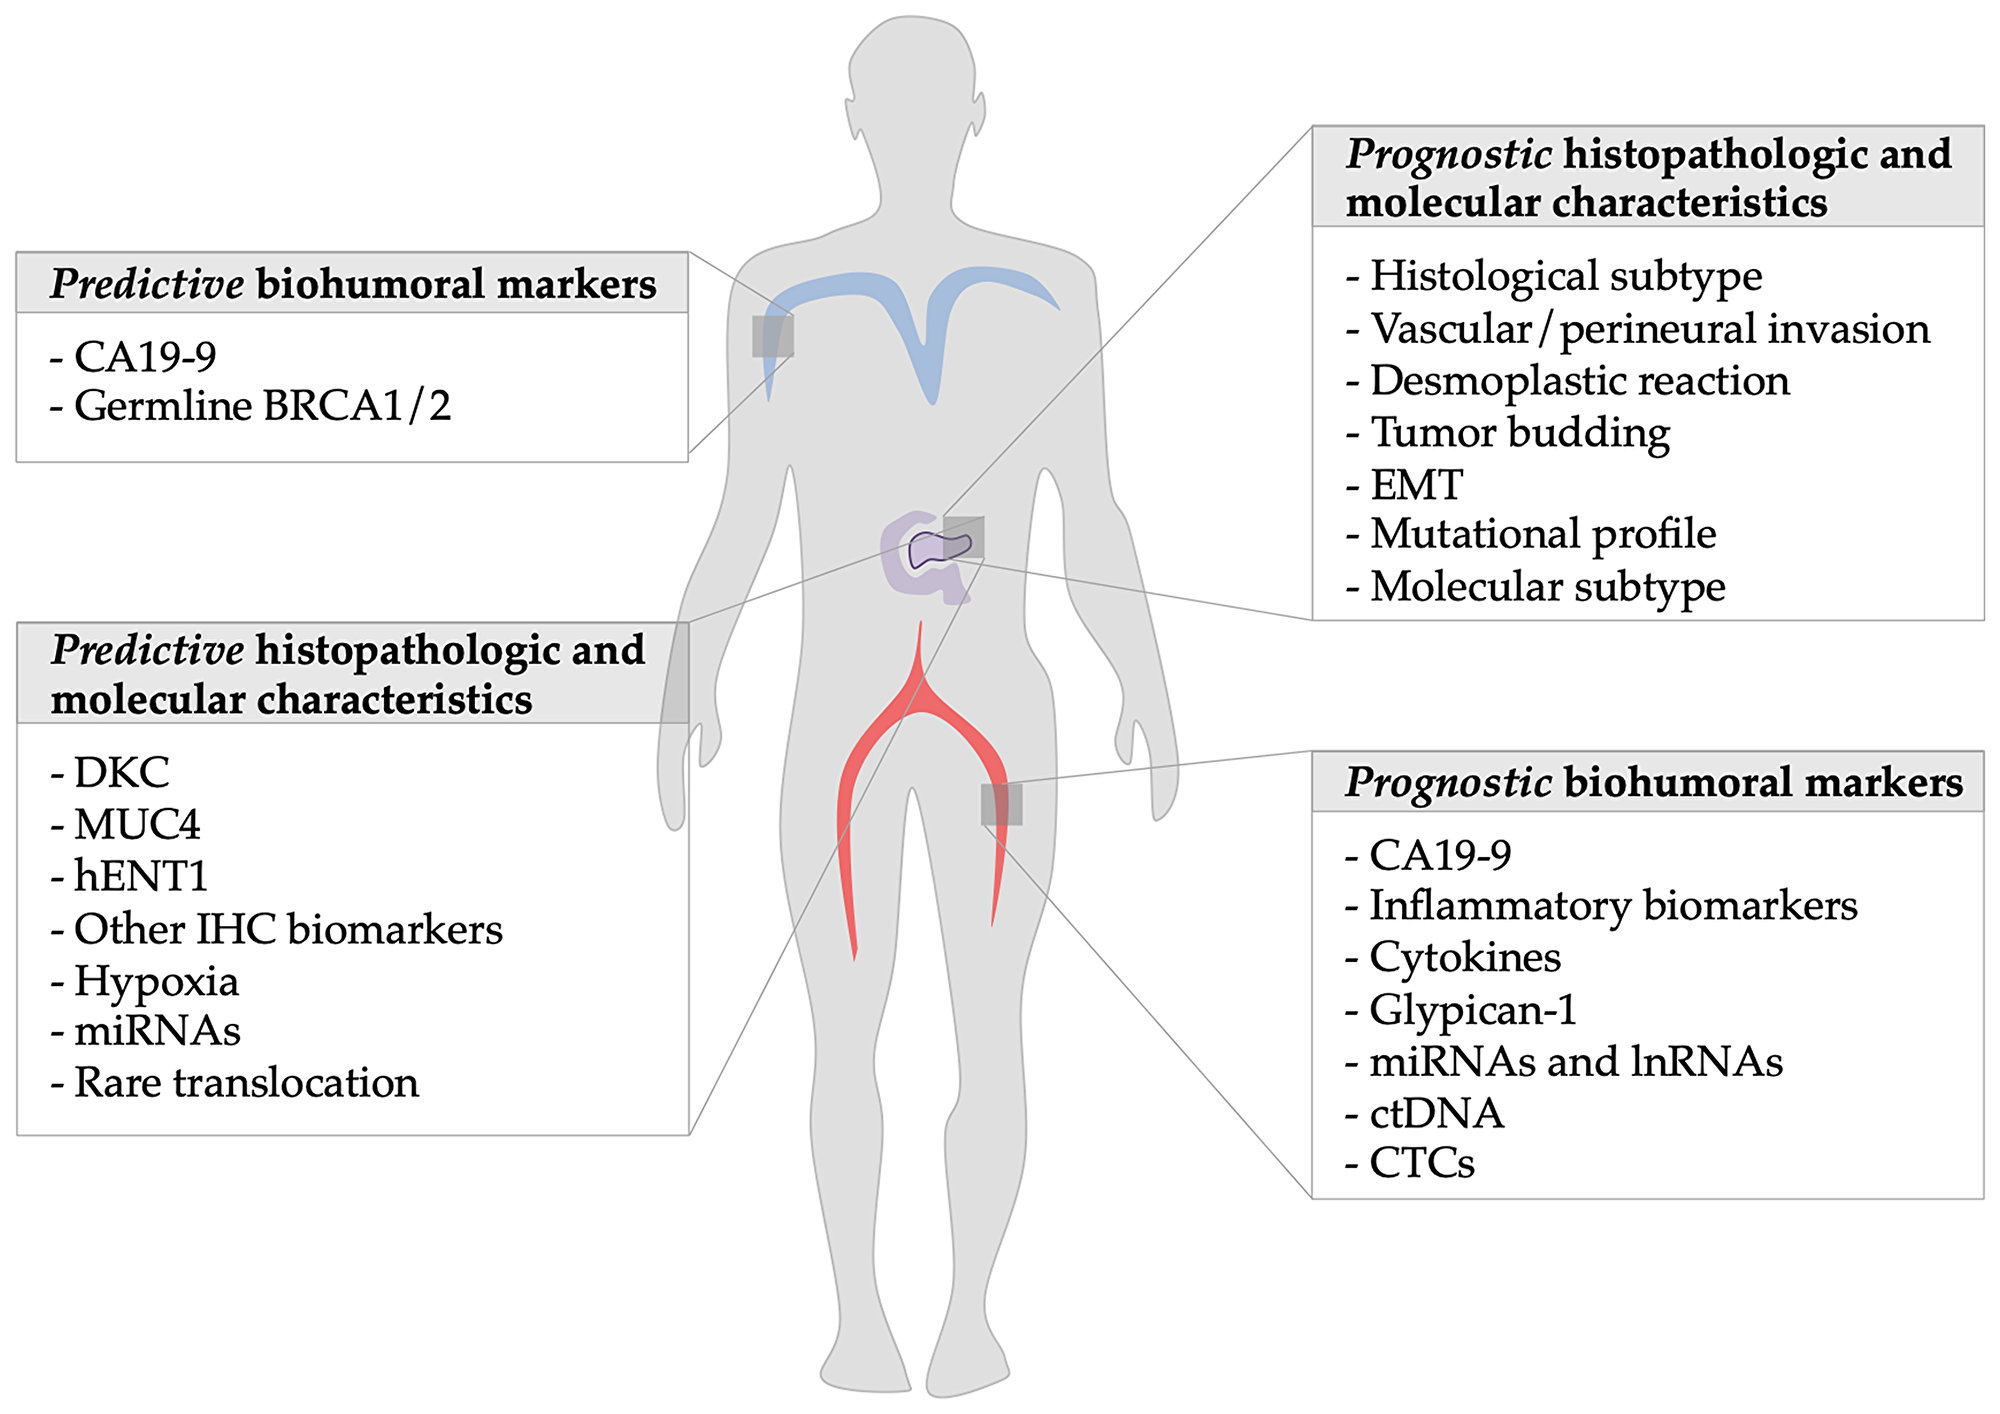 Summary of prognostic factors of metastatic pancreatic ductal adenocarcinoma: The figure shows on the left side the predictive markers discussed in the article and on the right the prognostic ones.